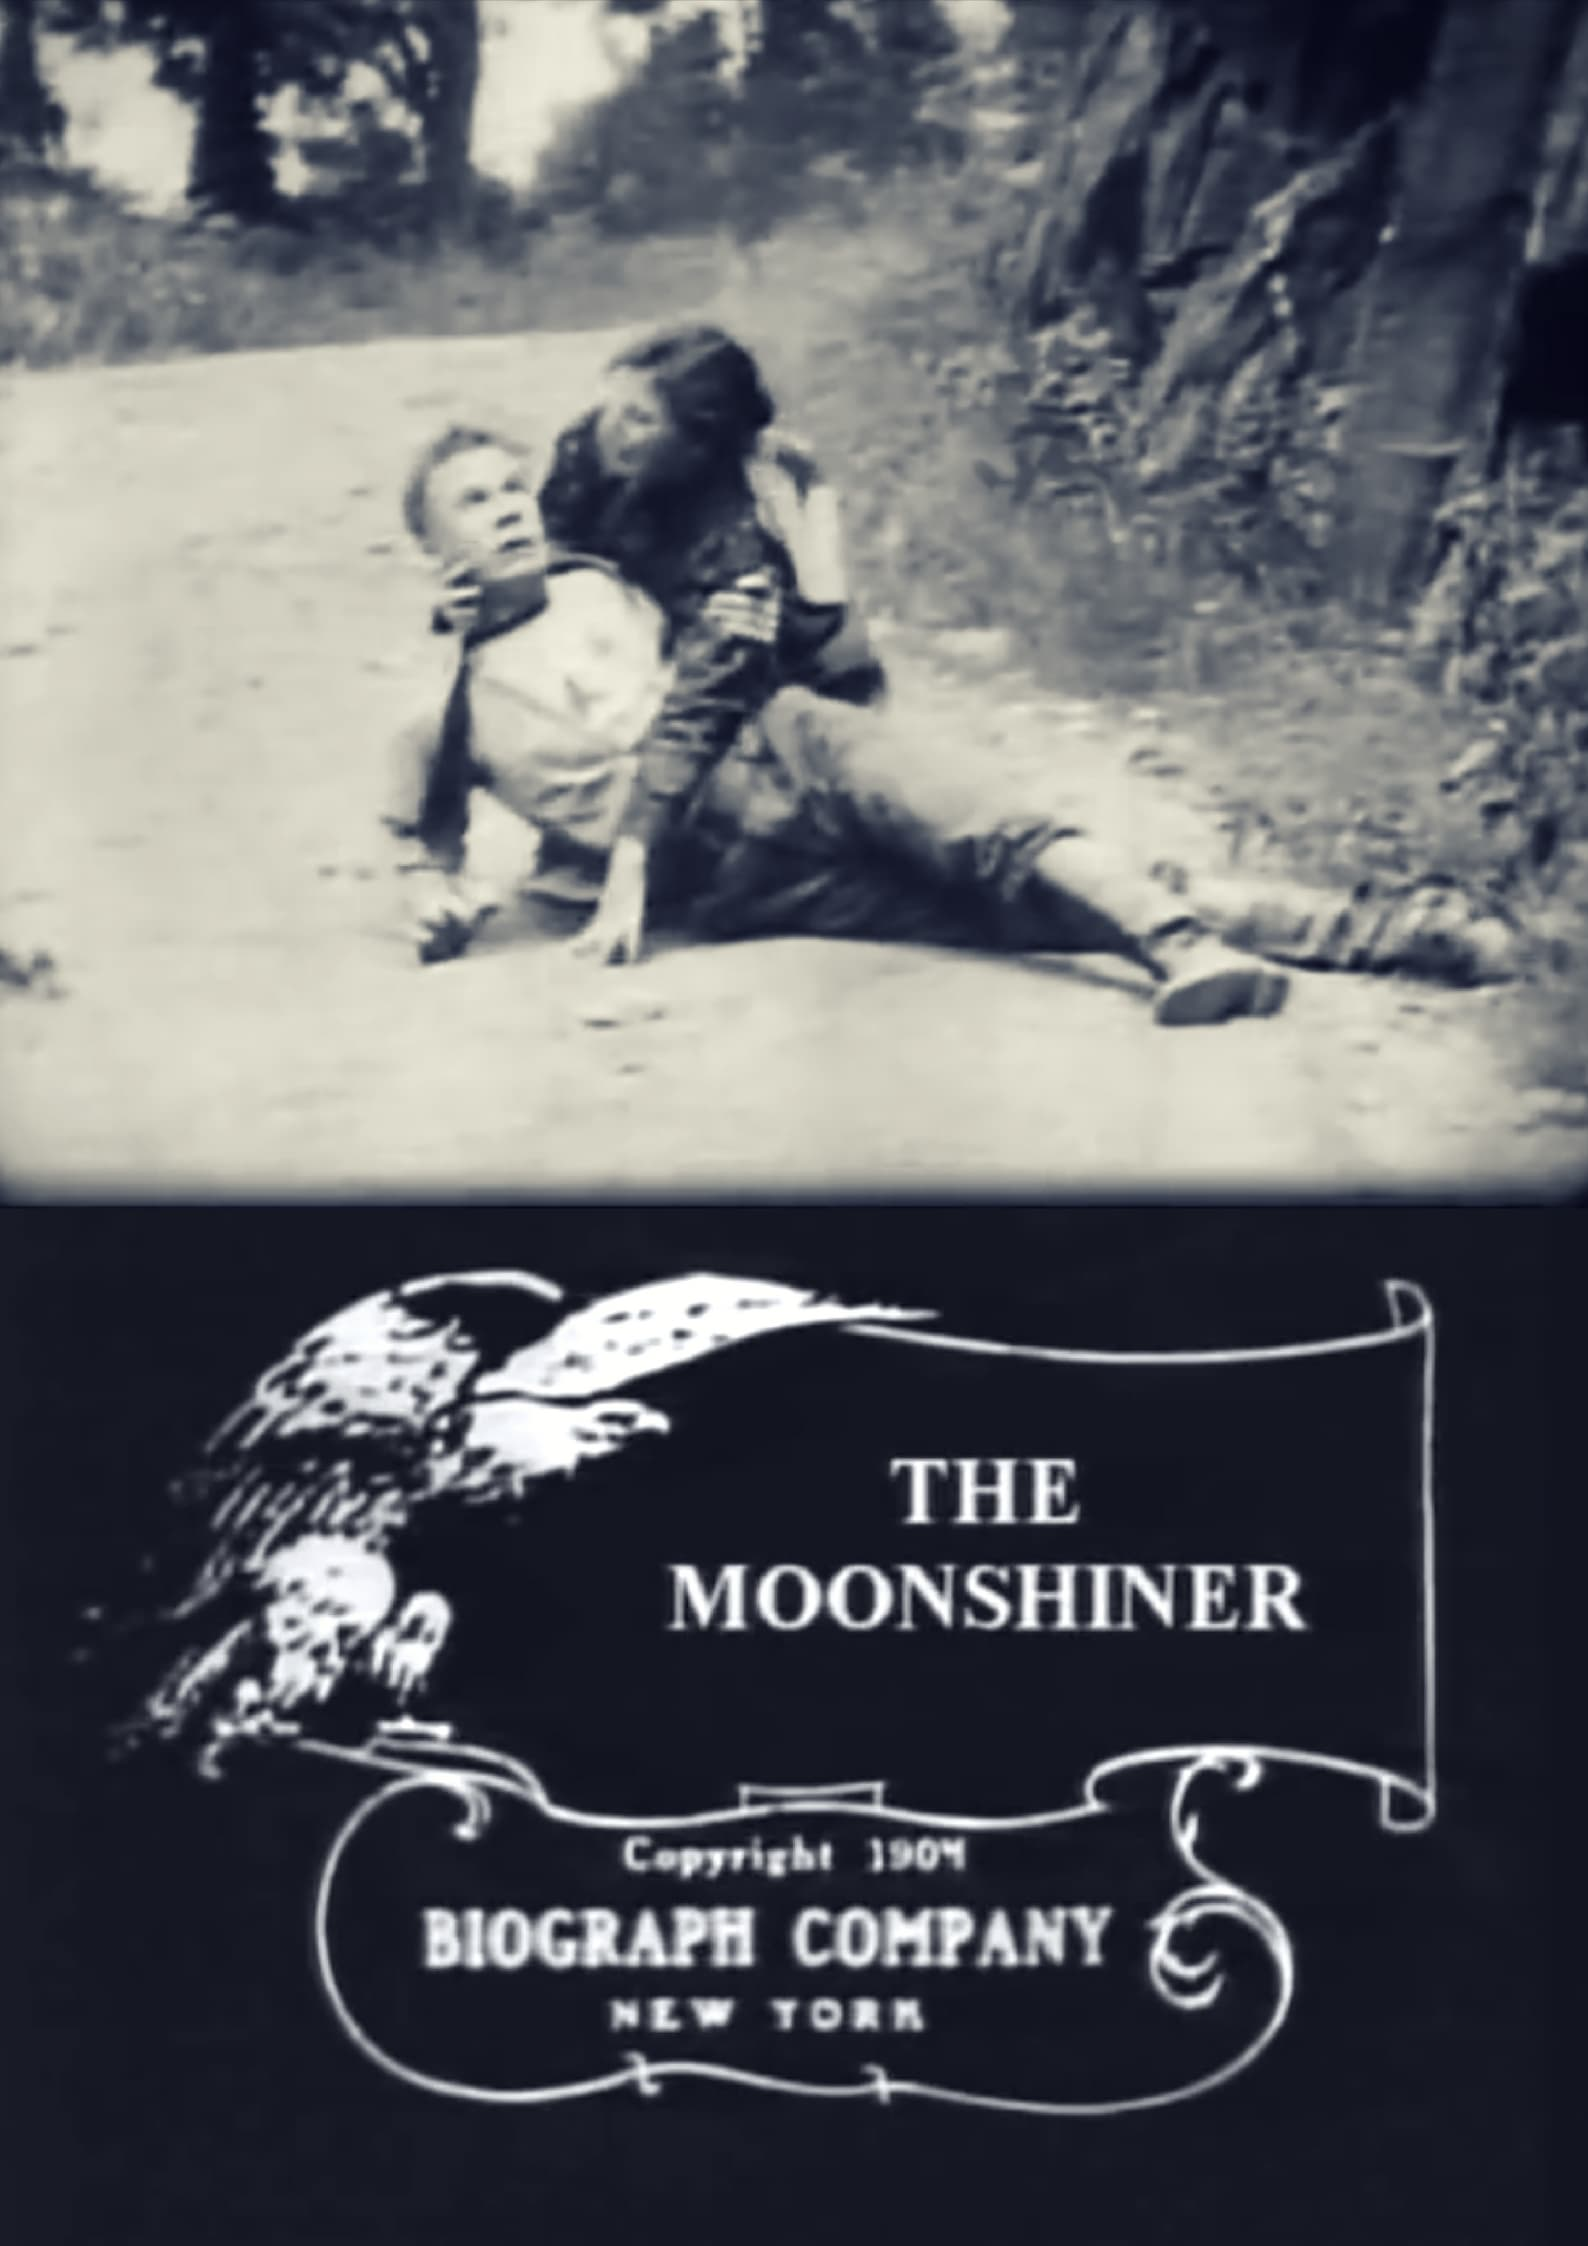 The Moonshiner (1904)